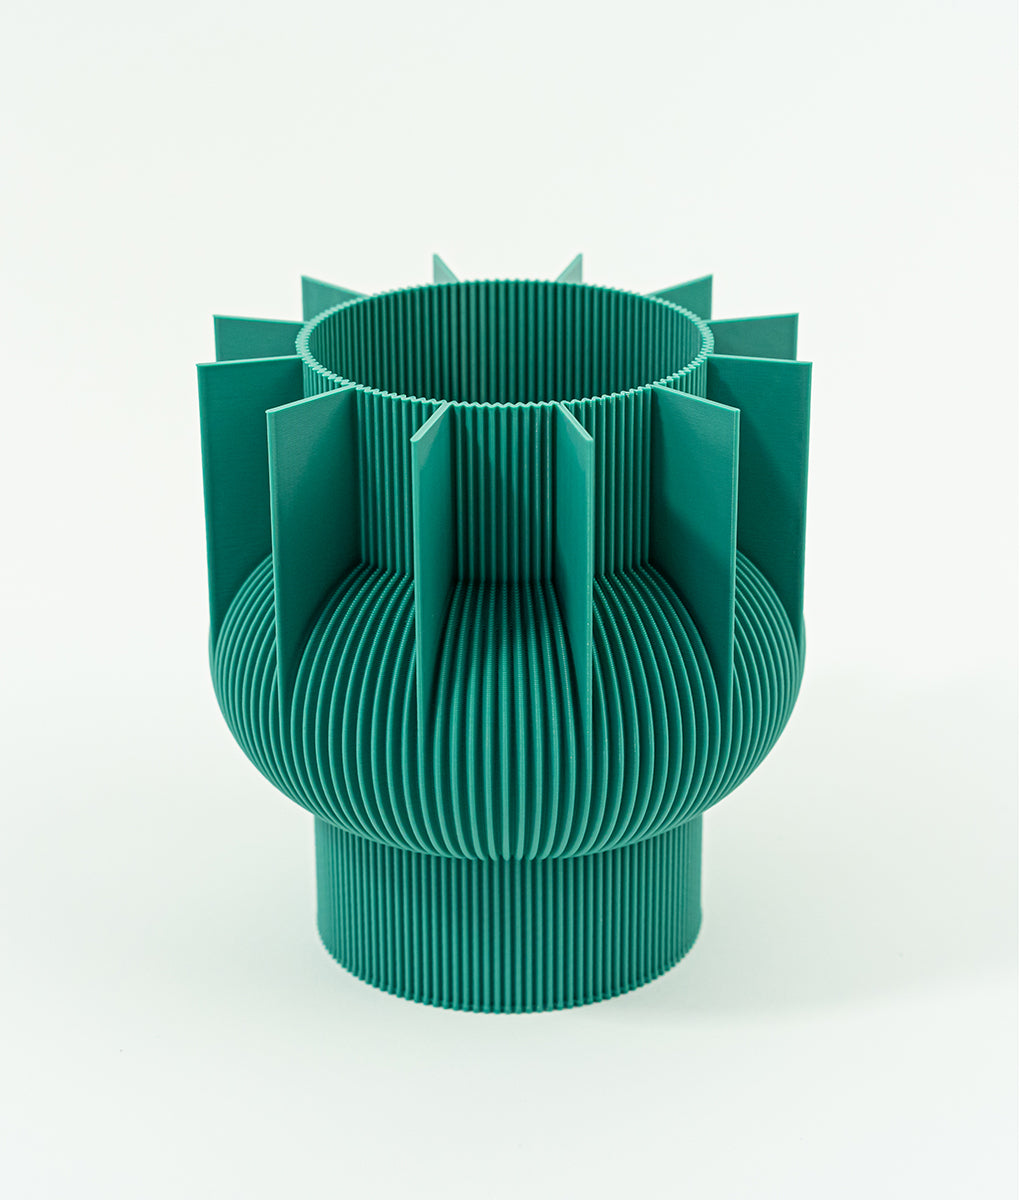 Waldraud-UAUPROJECT-S-Vase-02-Dark-Green